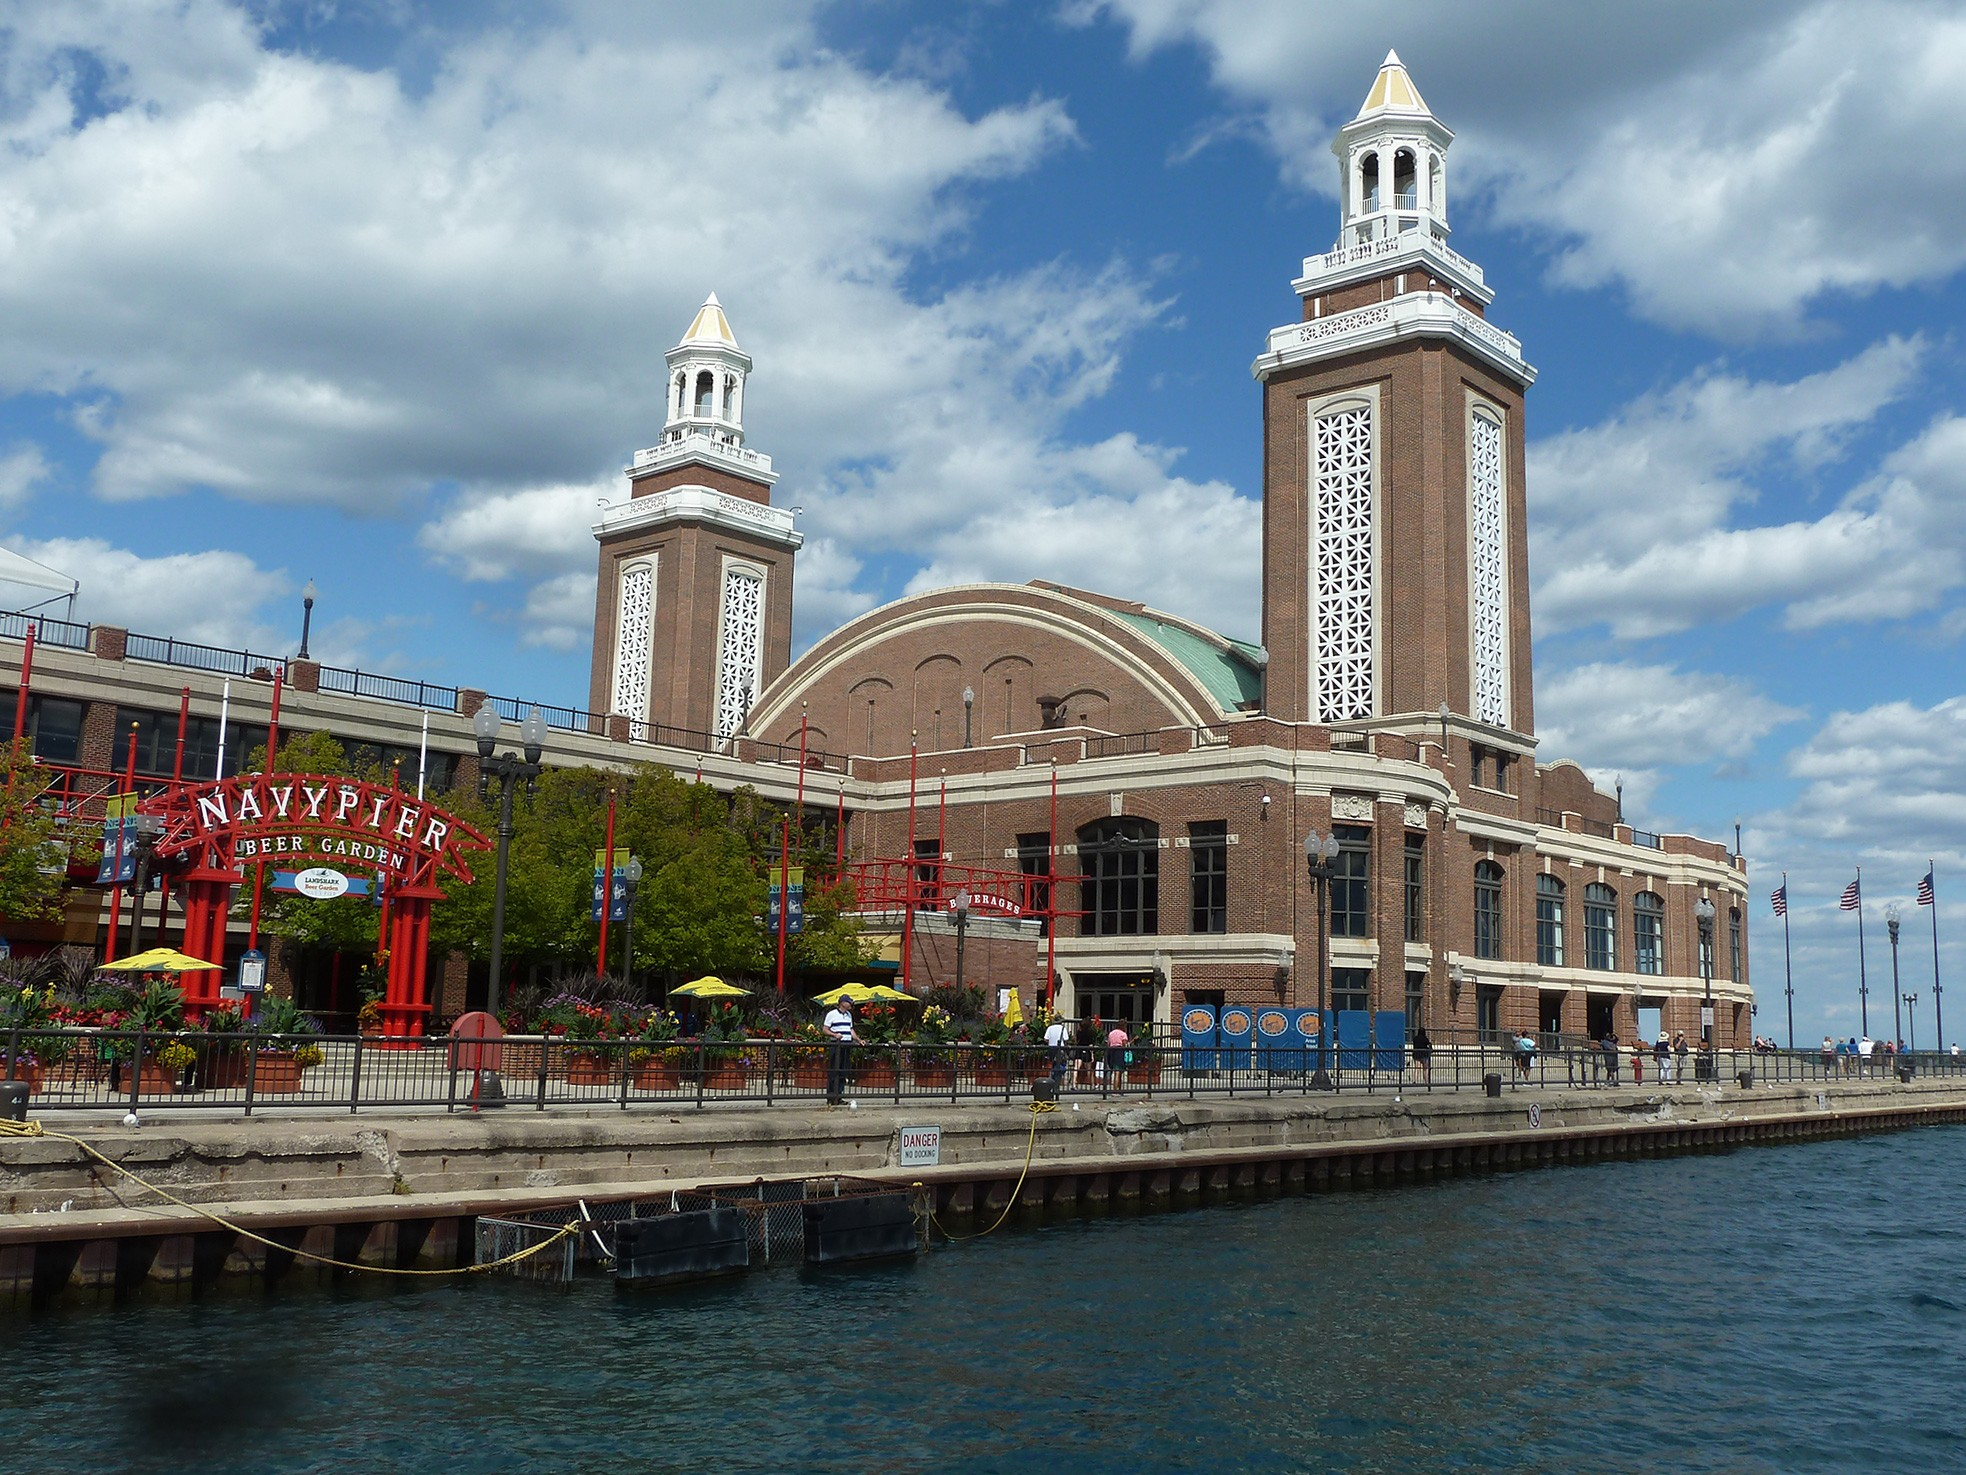 navy pier and chicago shakespeare theater tours chicago